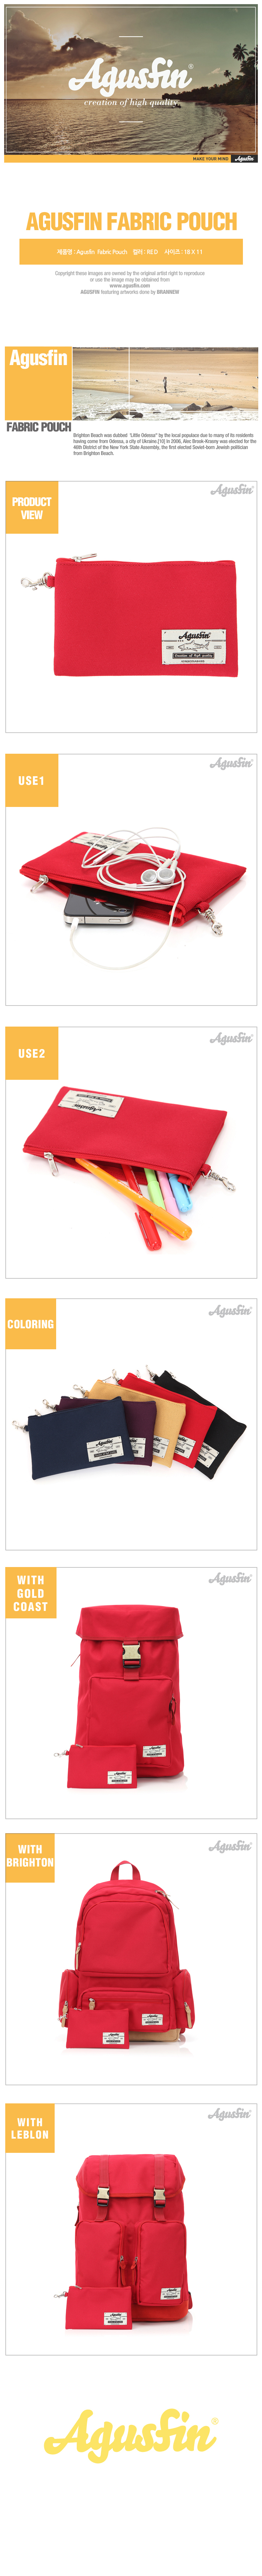 [어거스핀] AGUSFIN FABRIC POUCH (Red)